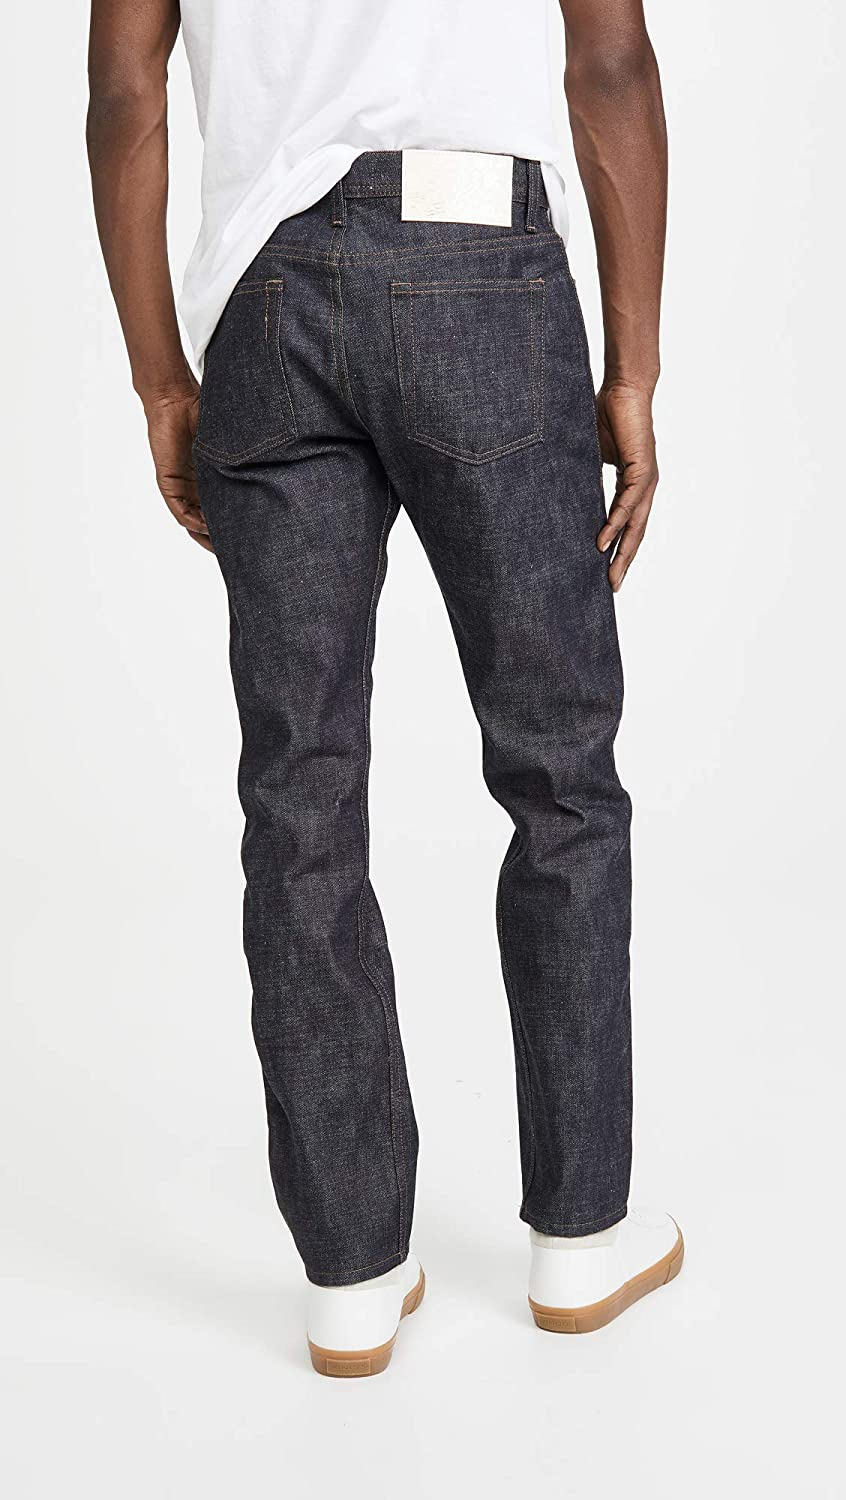 Naked /& Famous Mens Chinese New Year Metal Rat Weird Guy Jeans